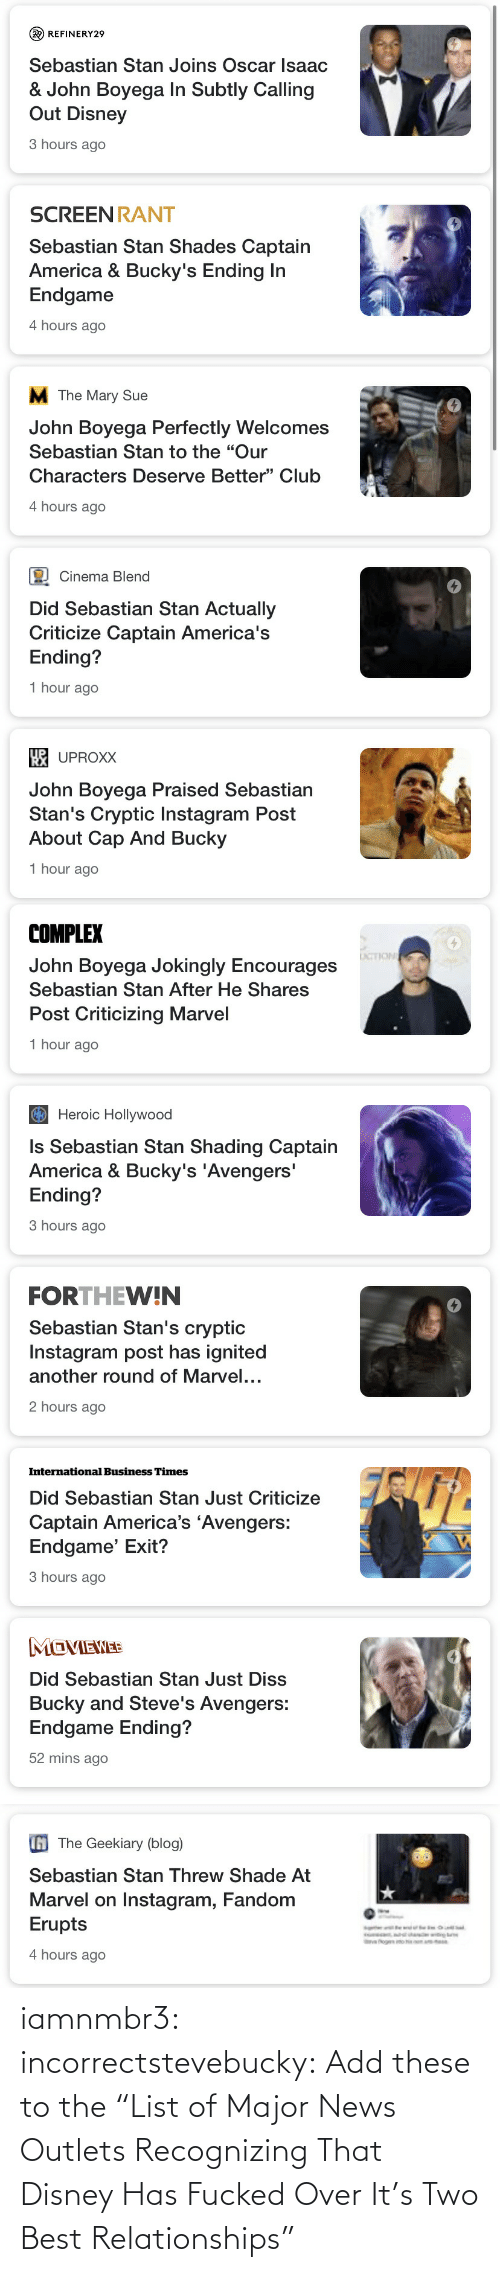 "major: iamnmbr3:  incorrectstevebucky: Add these to the ""List of Major News Outlets Recognizing That Disney Has Fucked Over It's Two Best Relationships"""